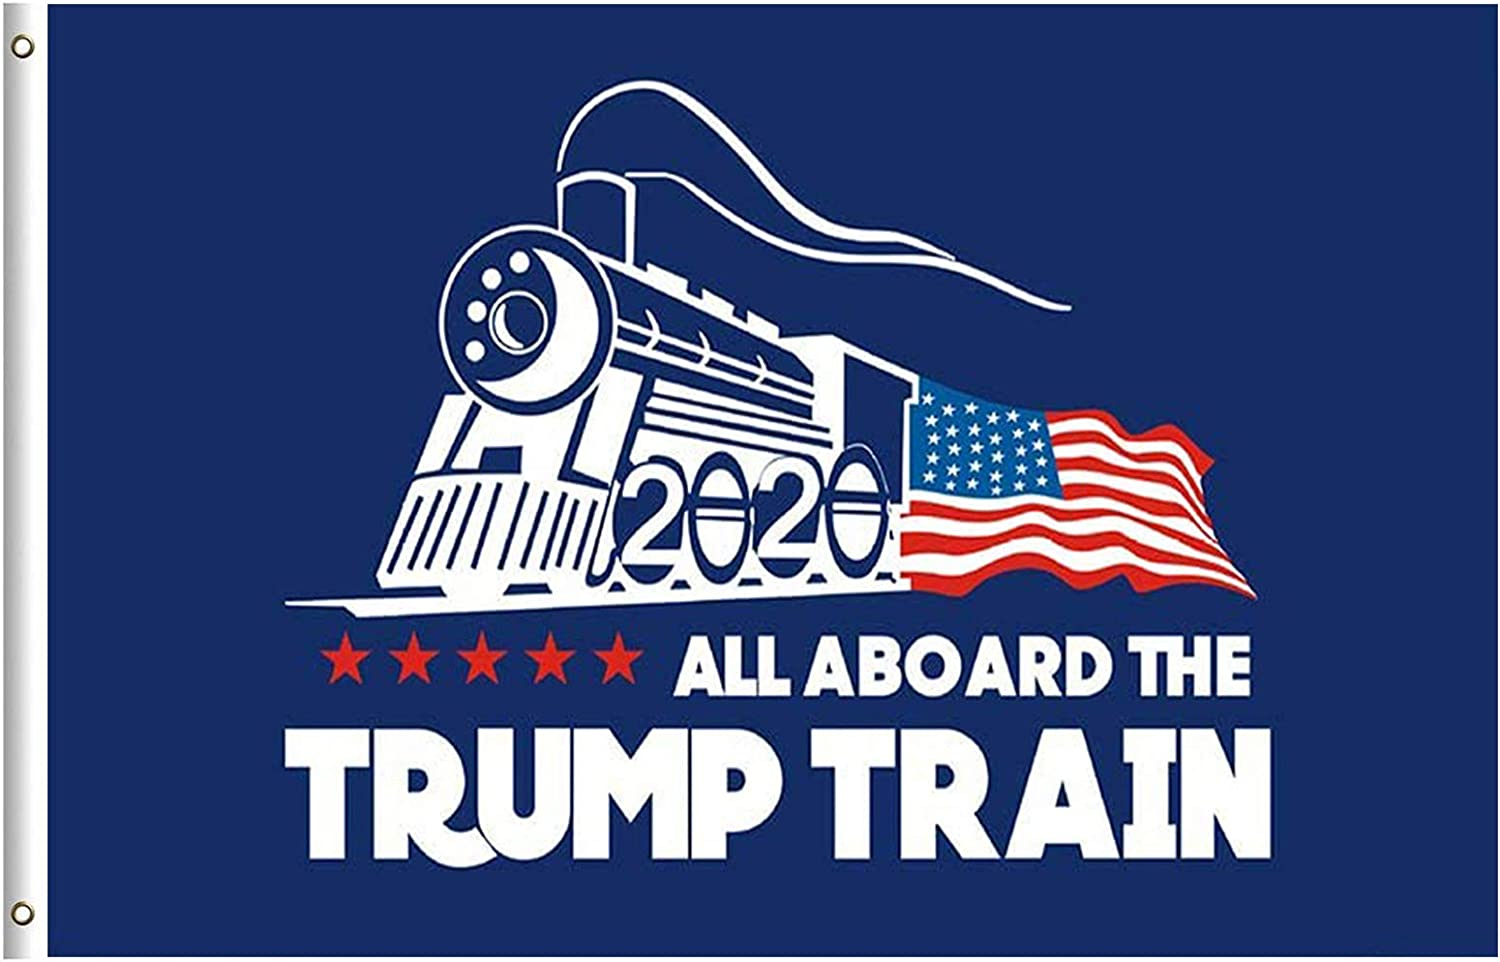 Trump Flag Train Donald Colorado Springs Mall Flags Direct sale of manufacturer 3 x 2020 5 with Banner feet